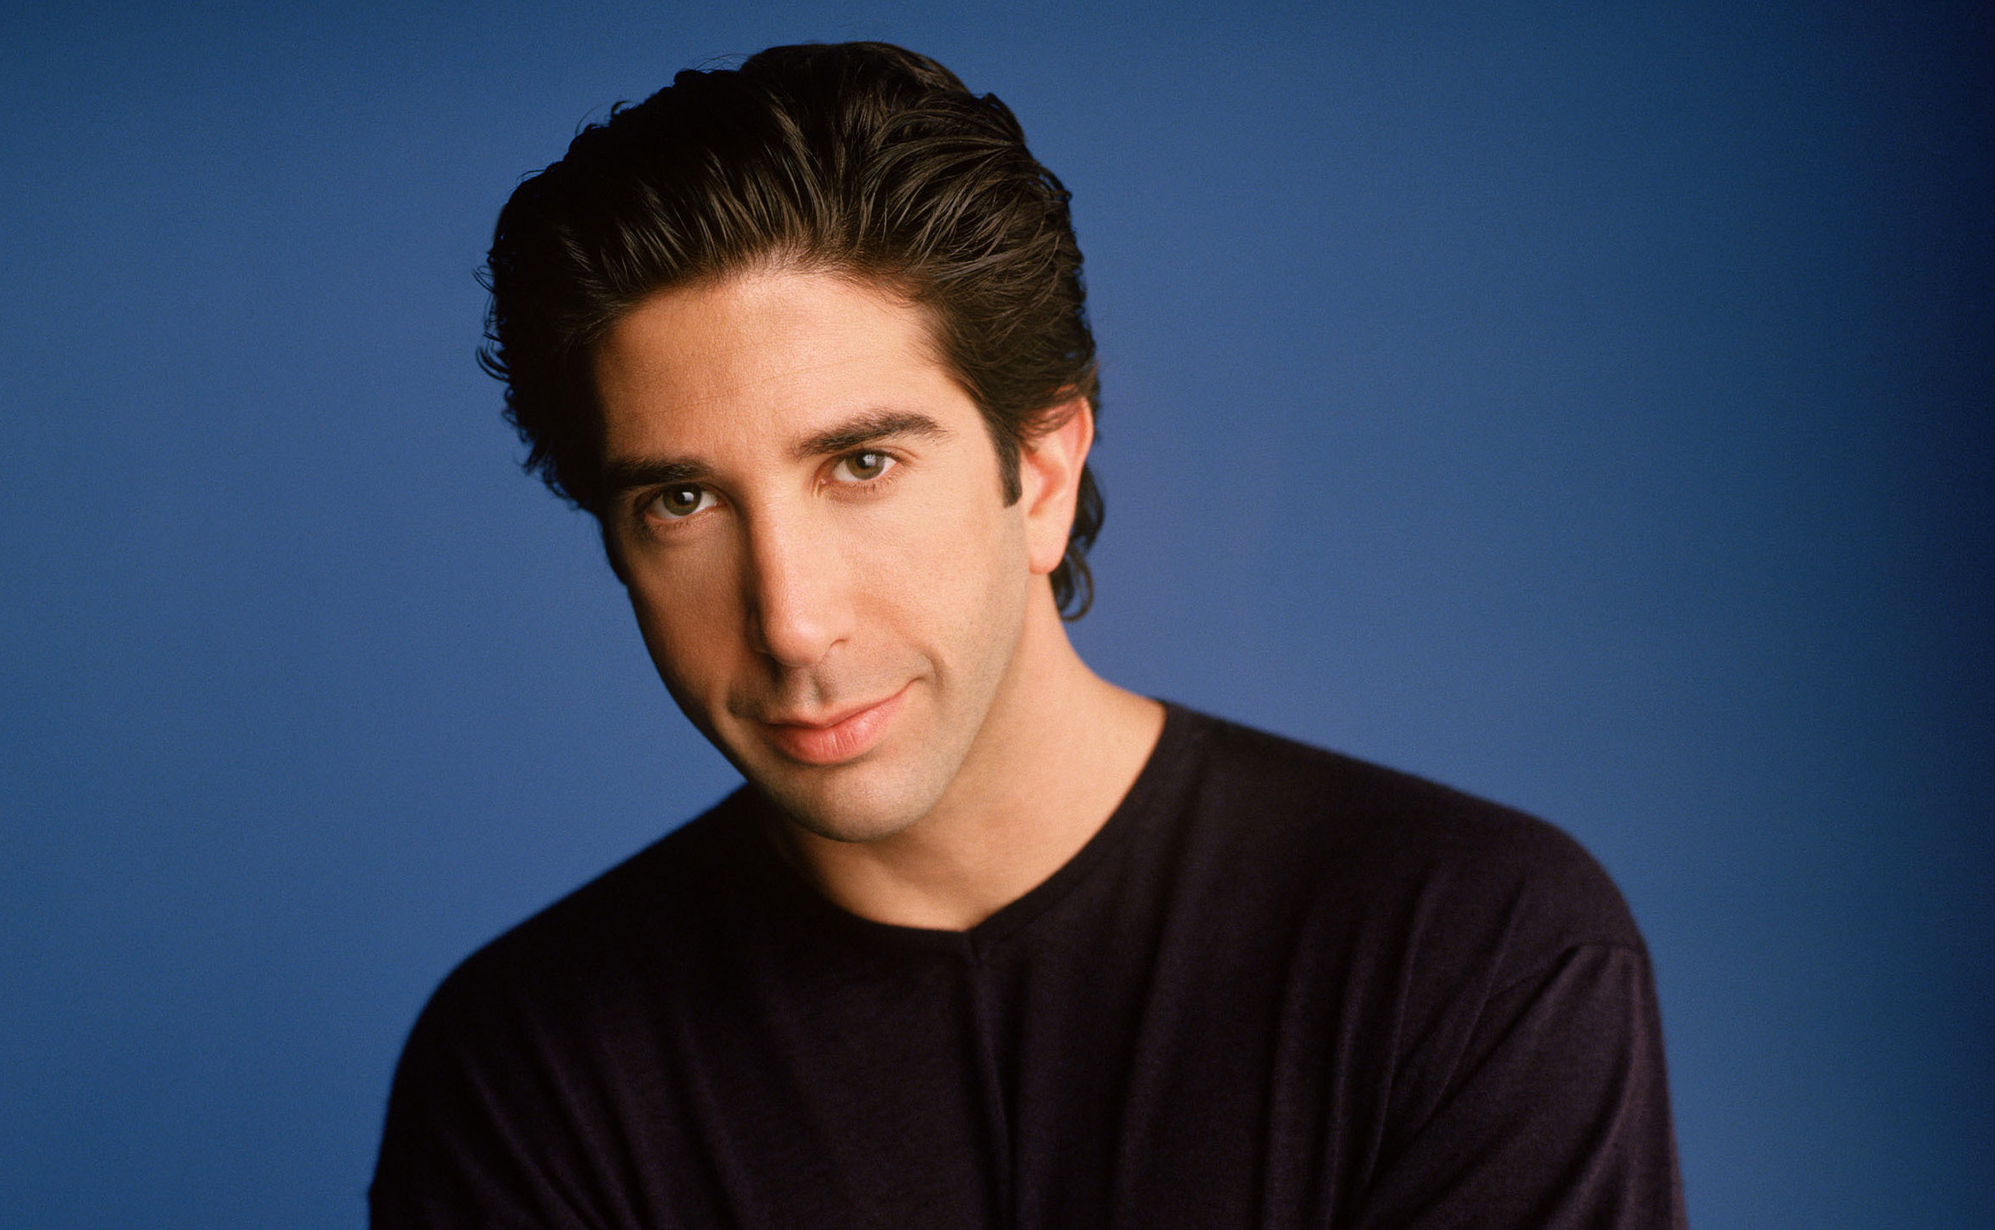 David Schwimmer Wallpapers